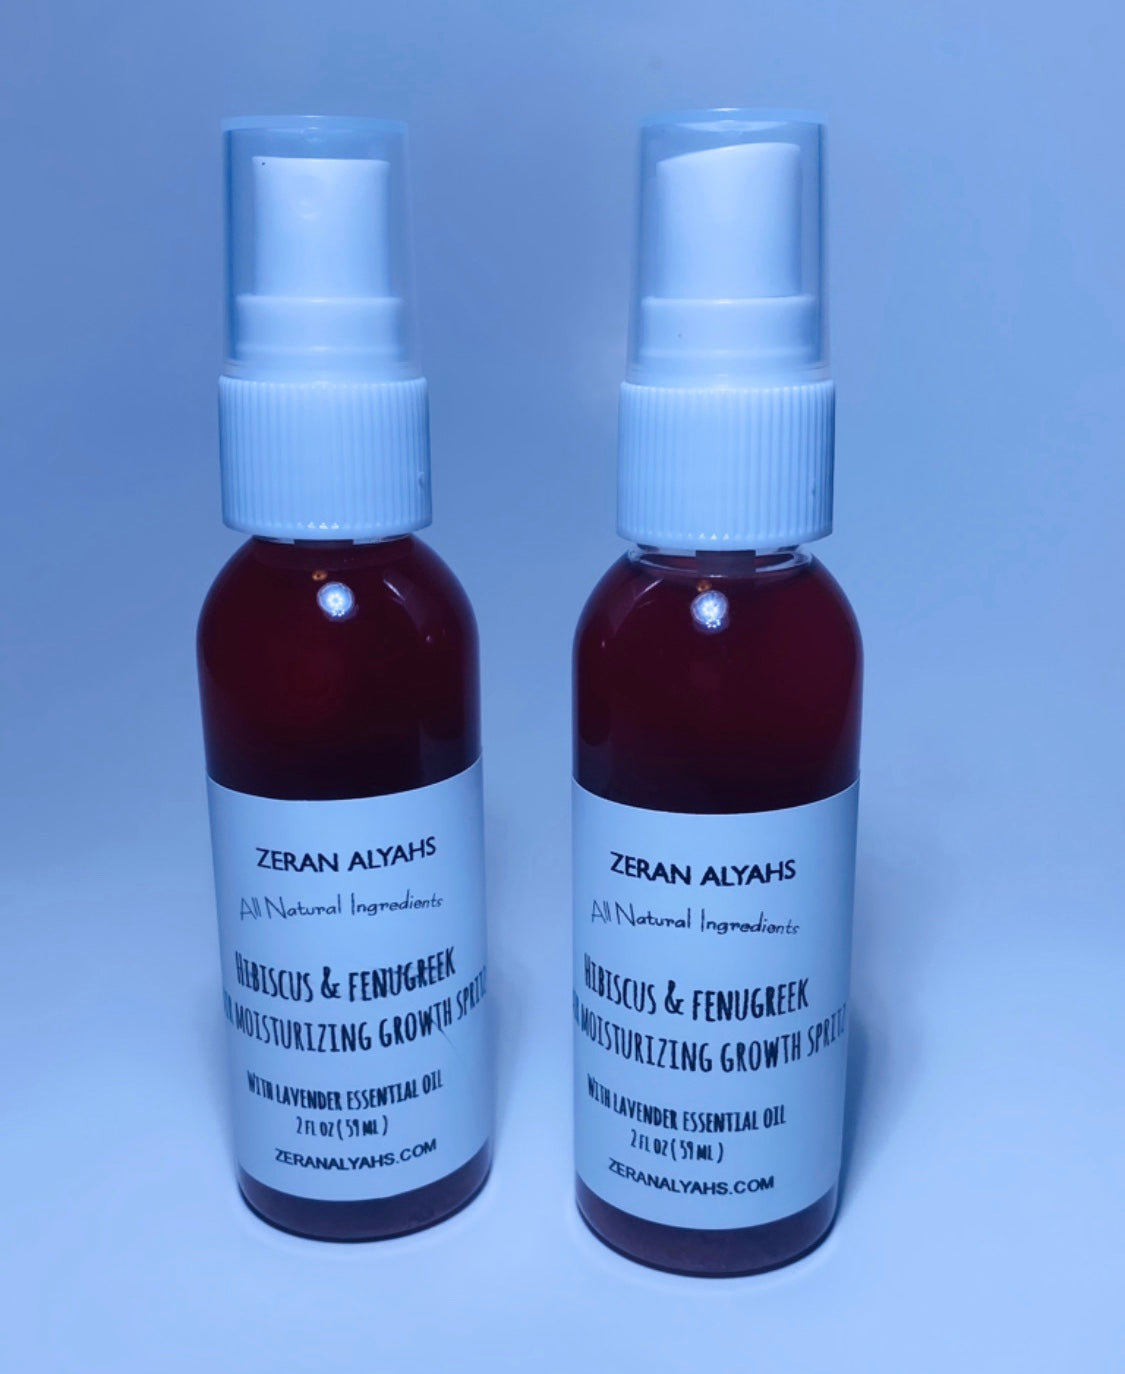 Hibiscus & Fenugreek Hair Moisturizing Growth Spritz With Lavender Essential Oil